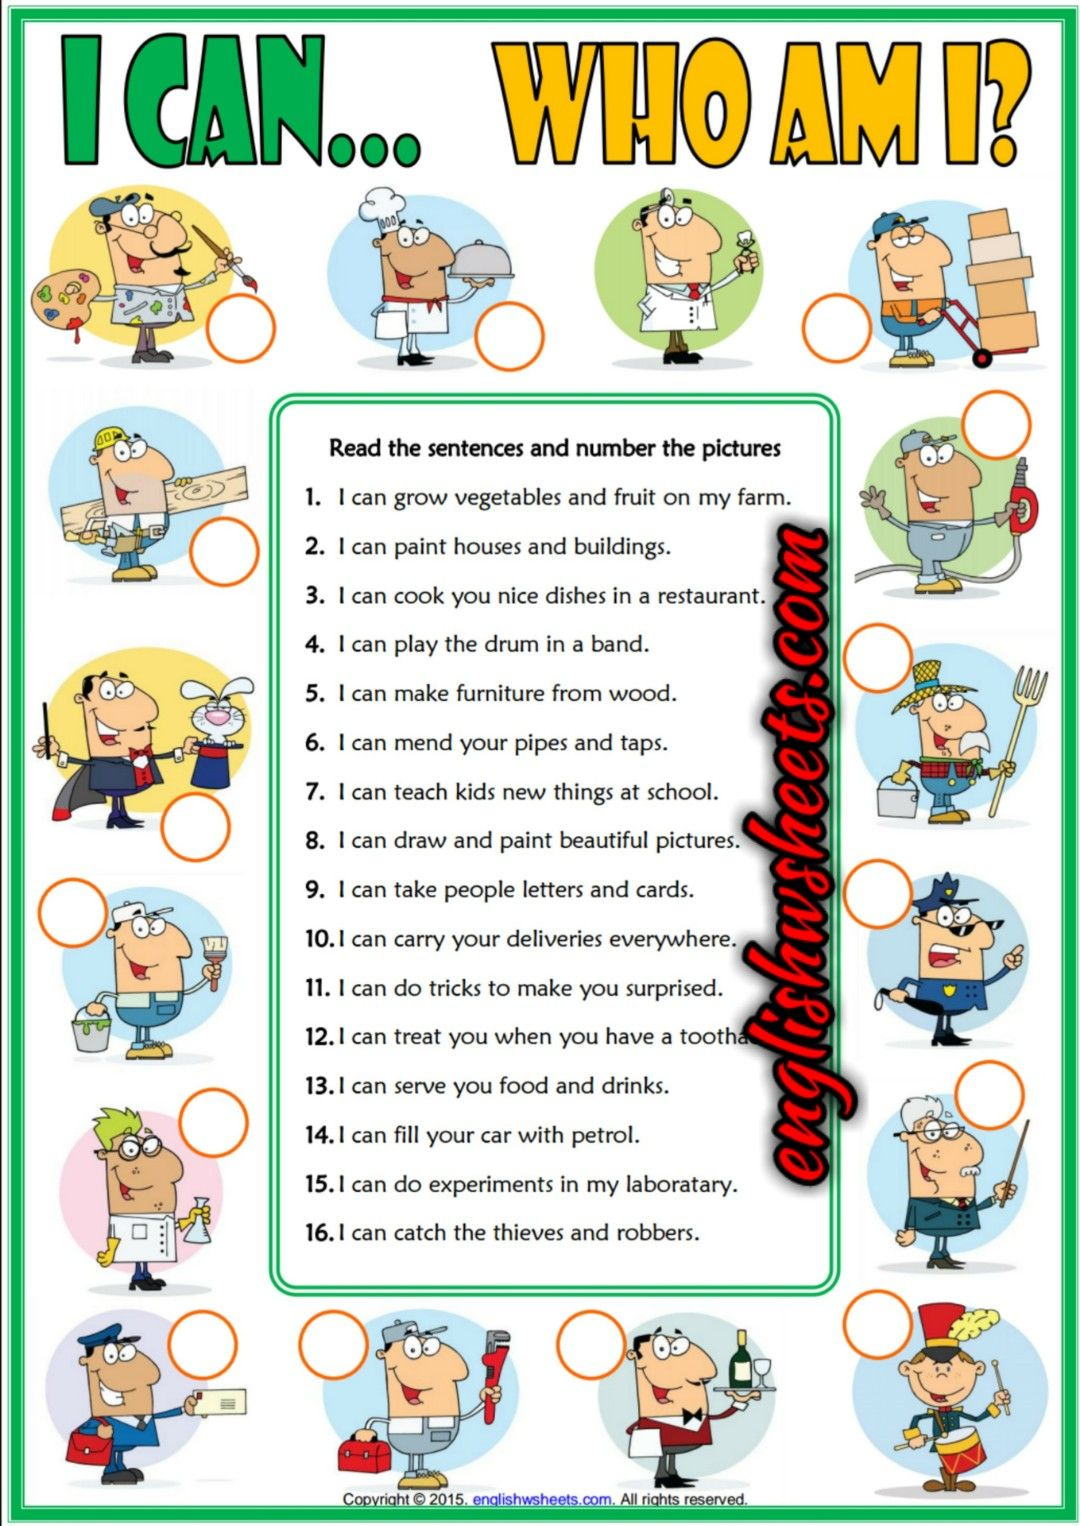 Ability Can Esl Printable Jobs Matching Exercise Worksheet For Kids Ability Can E Speaking Activities English English Lessons For Kids Teach English To Kids [ 1526 x 1080 Pixel ]